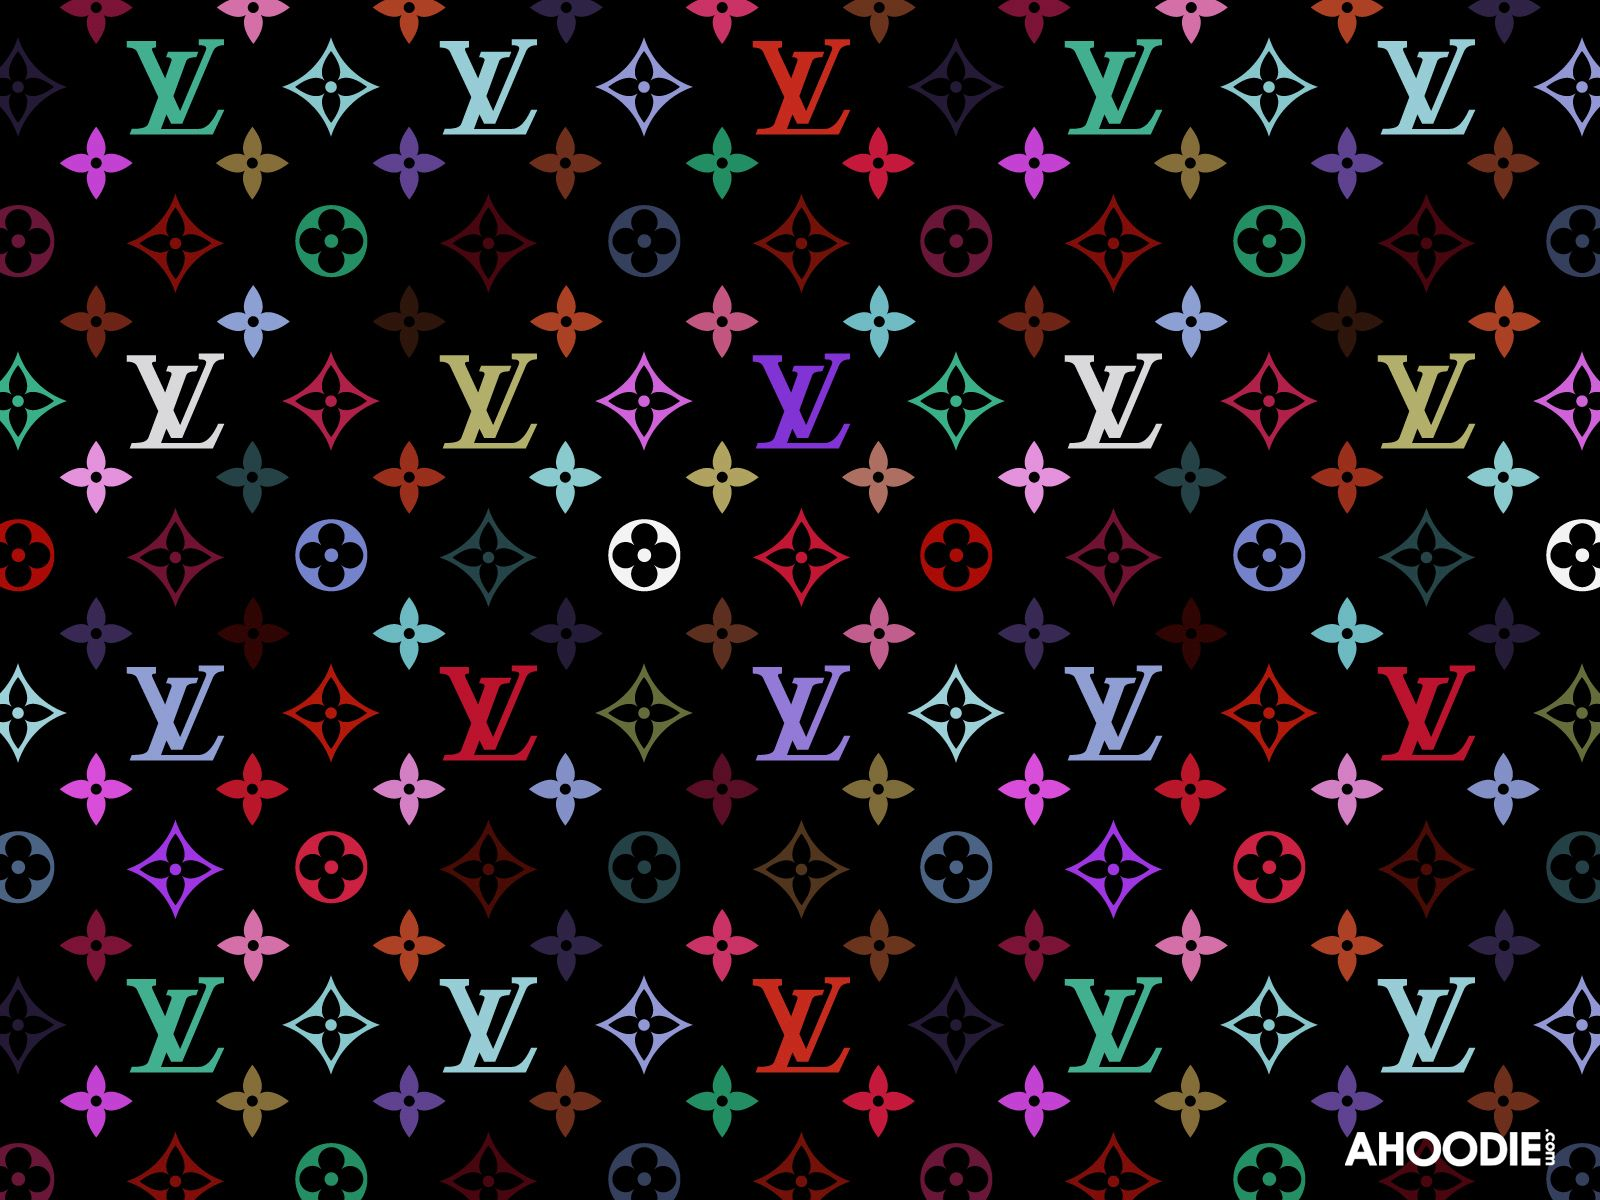 undefined Louis Vuitton Backgrounds (27 Wallpapers